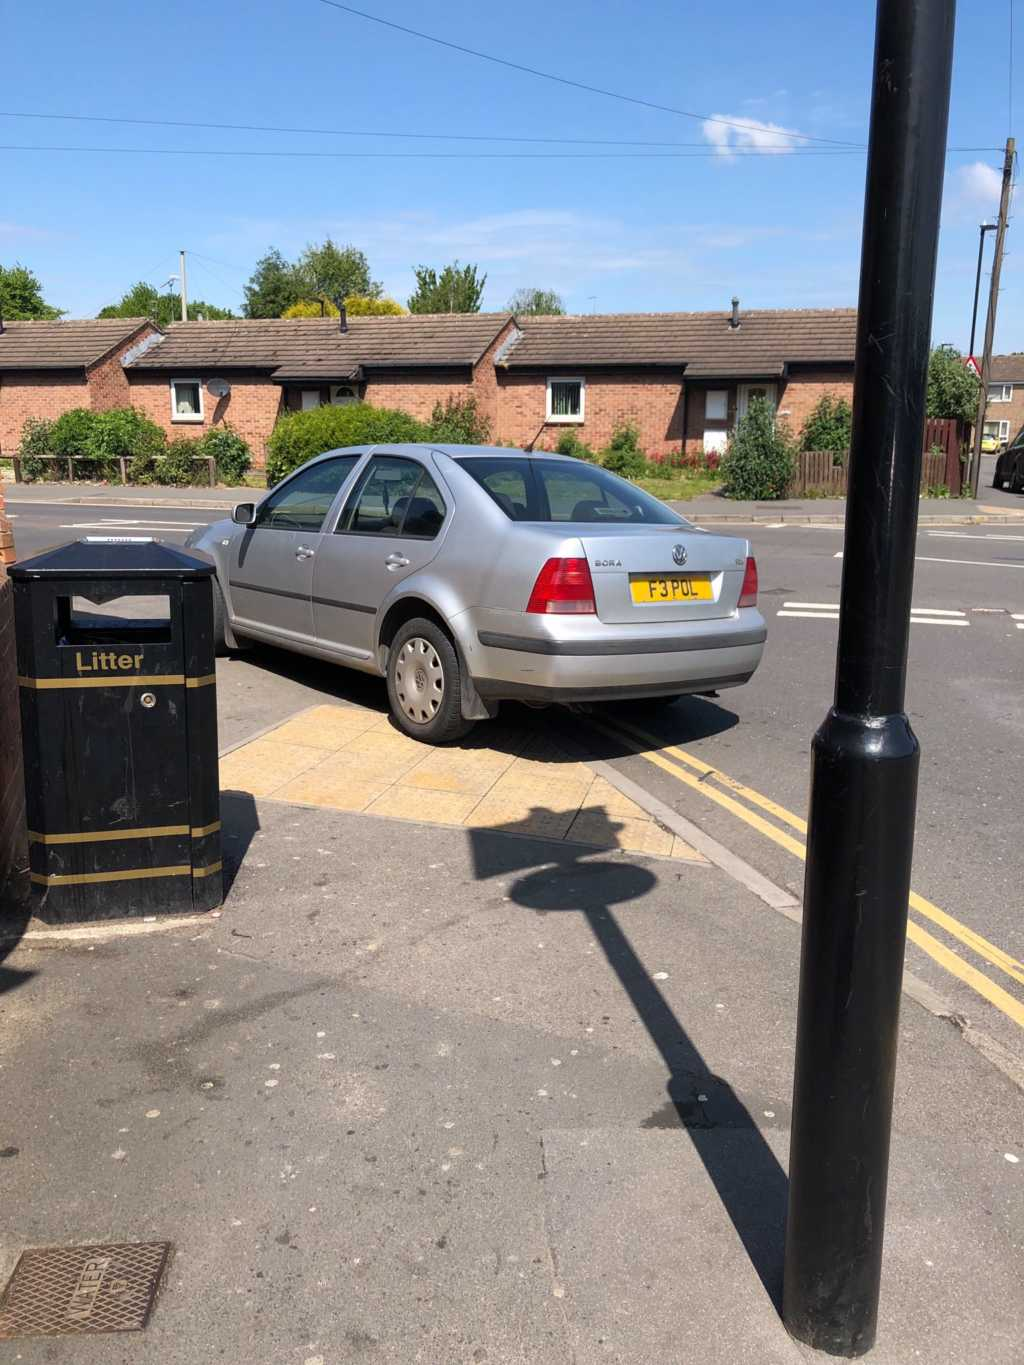 F3 POL displaying Inconsiderate Parking